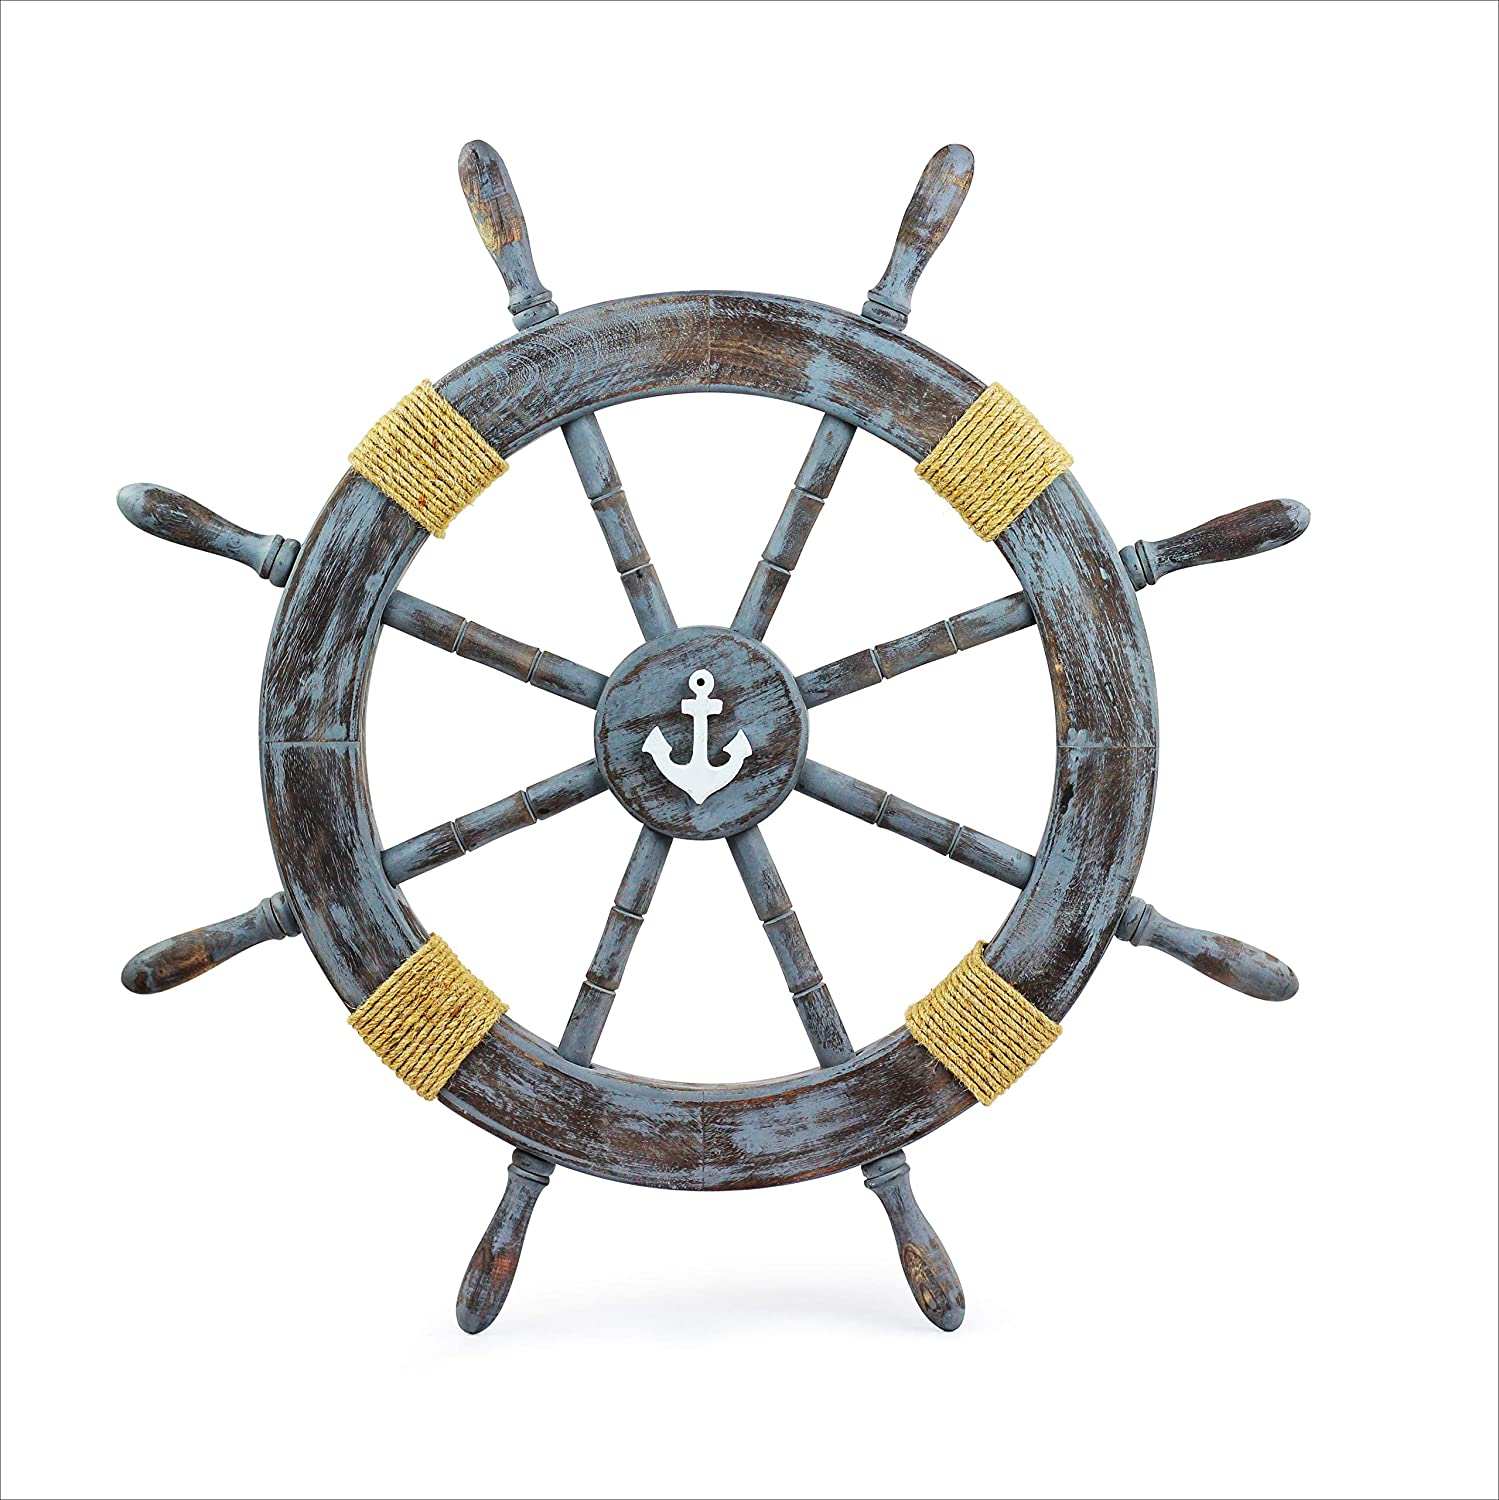 Nagina International Rustic Grey Nautical Vintage Themed Classic Wooden Ship Wheel with Anchor & Ropes | Ocean Beach House Home Decor (48 Inches)